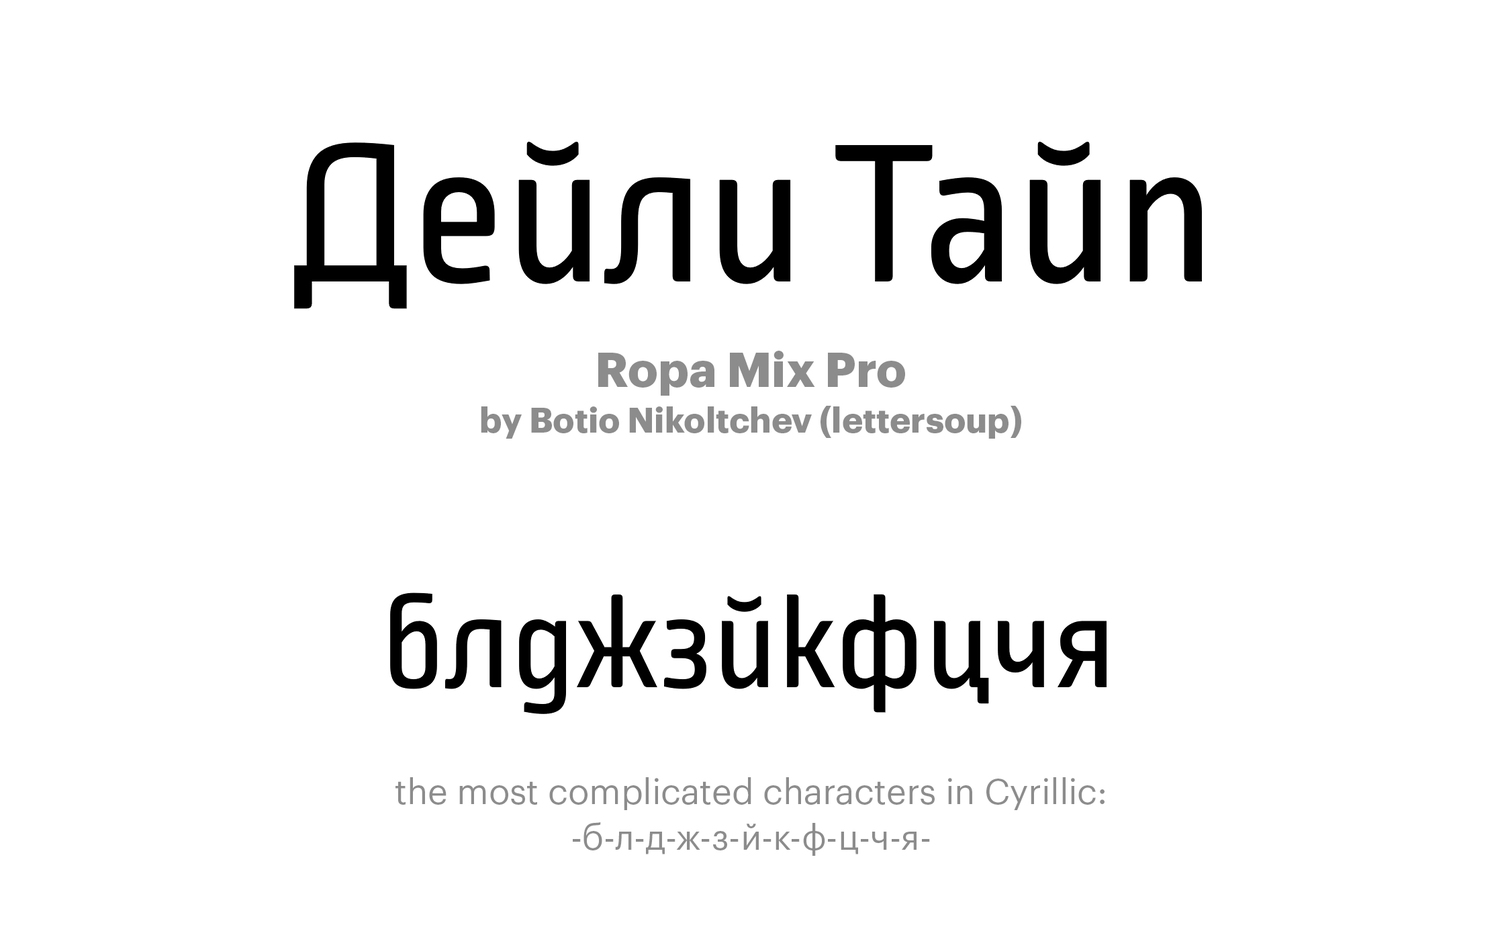 Ropa-Mix-Pro-by-Botio-Nikoltchev-(lettersoup)